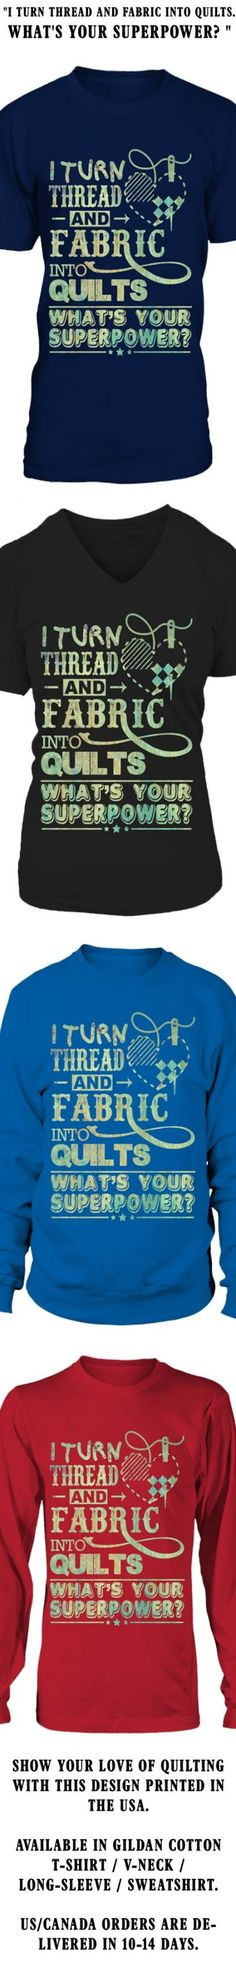 Plasterer Stand Back While I Work My Magic Cotton Long Sleeve T-Shirt